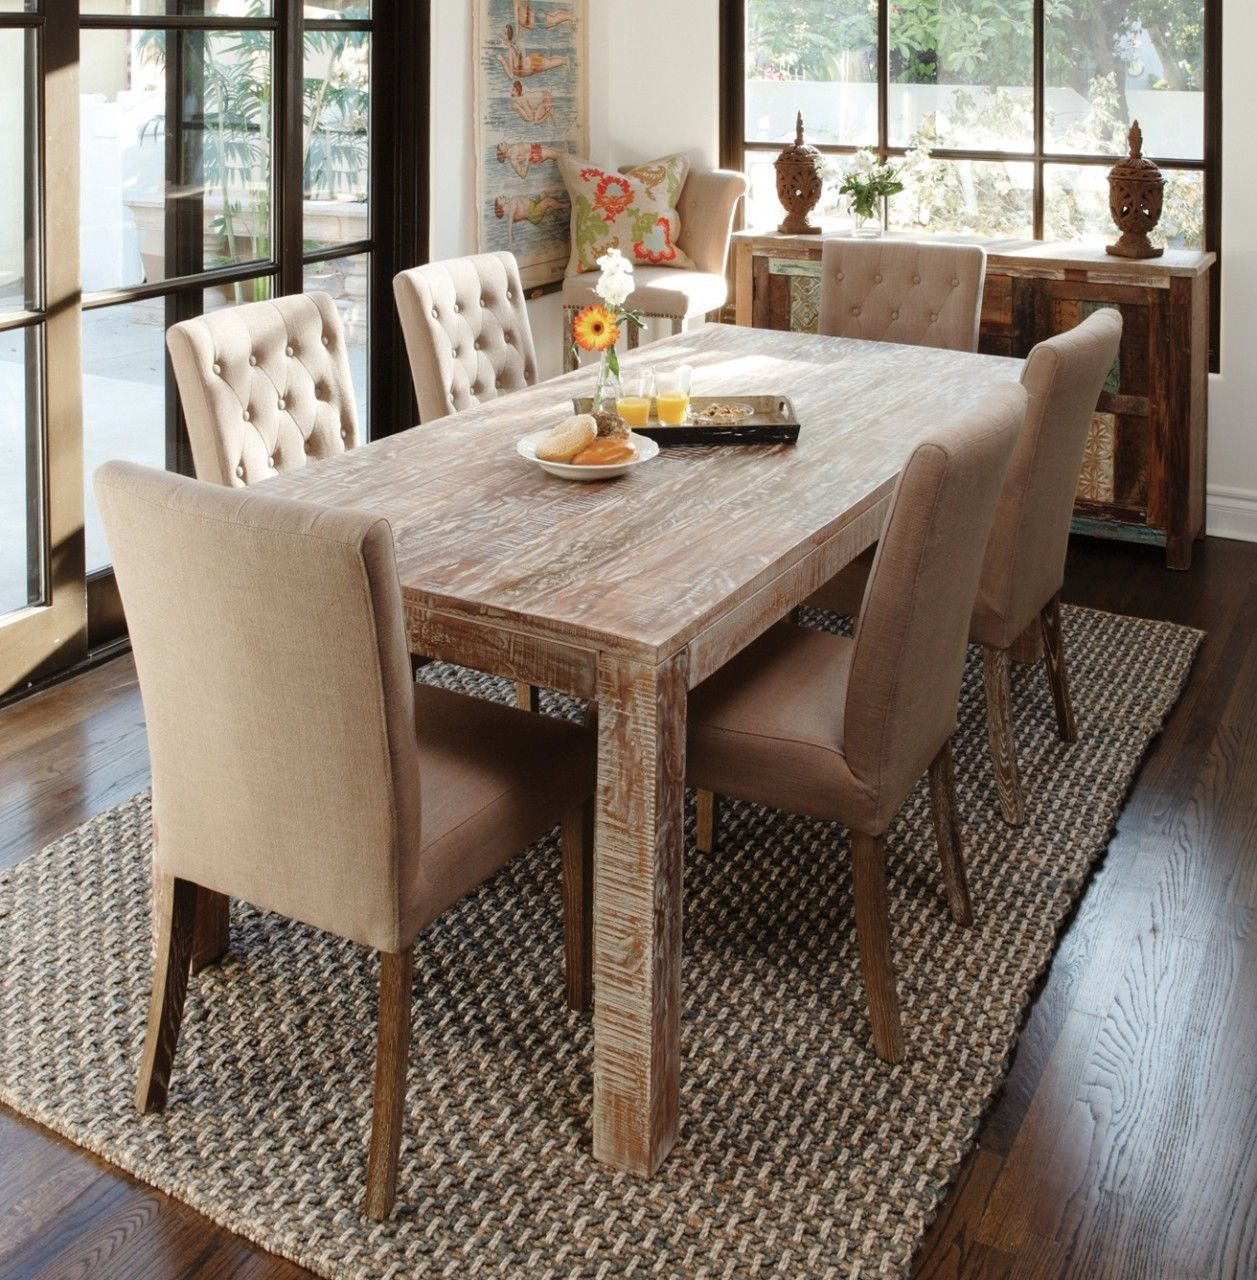 Hampton Farmhouse Dining Room Table 72. Hampton Farmhouse Dining Room Table 72    Farmhouse dining room